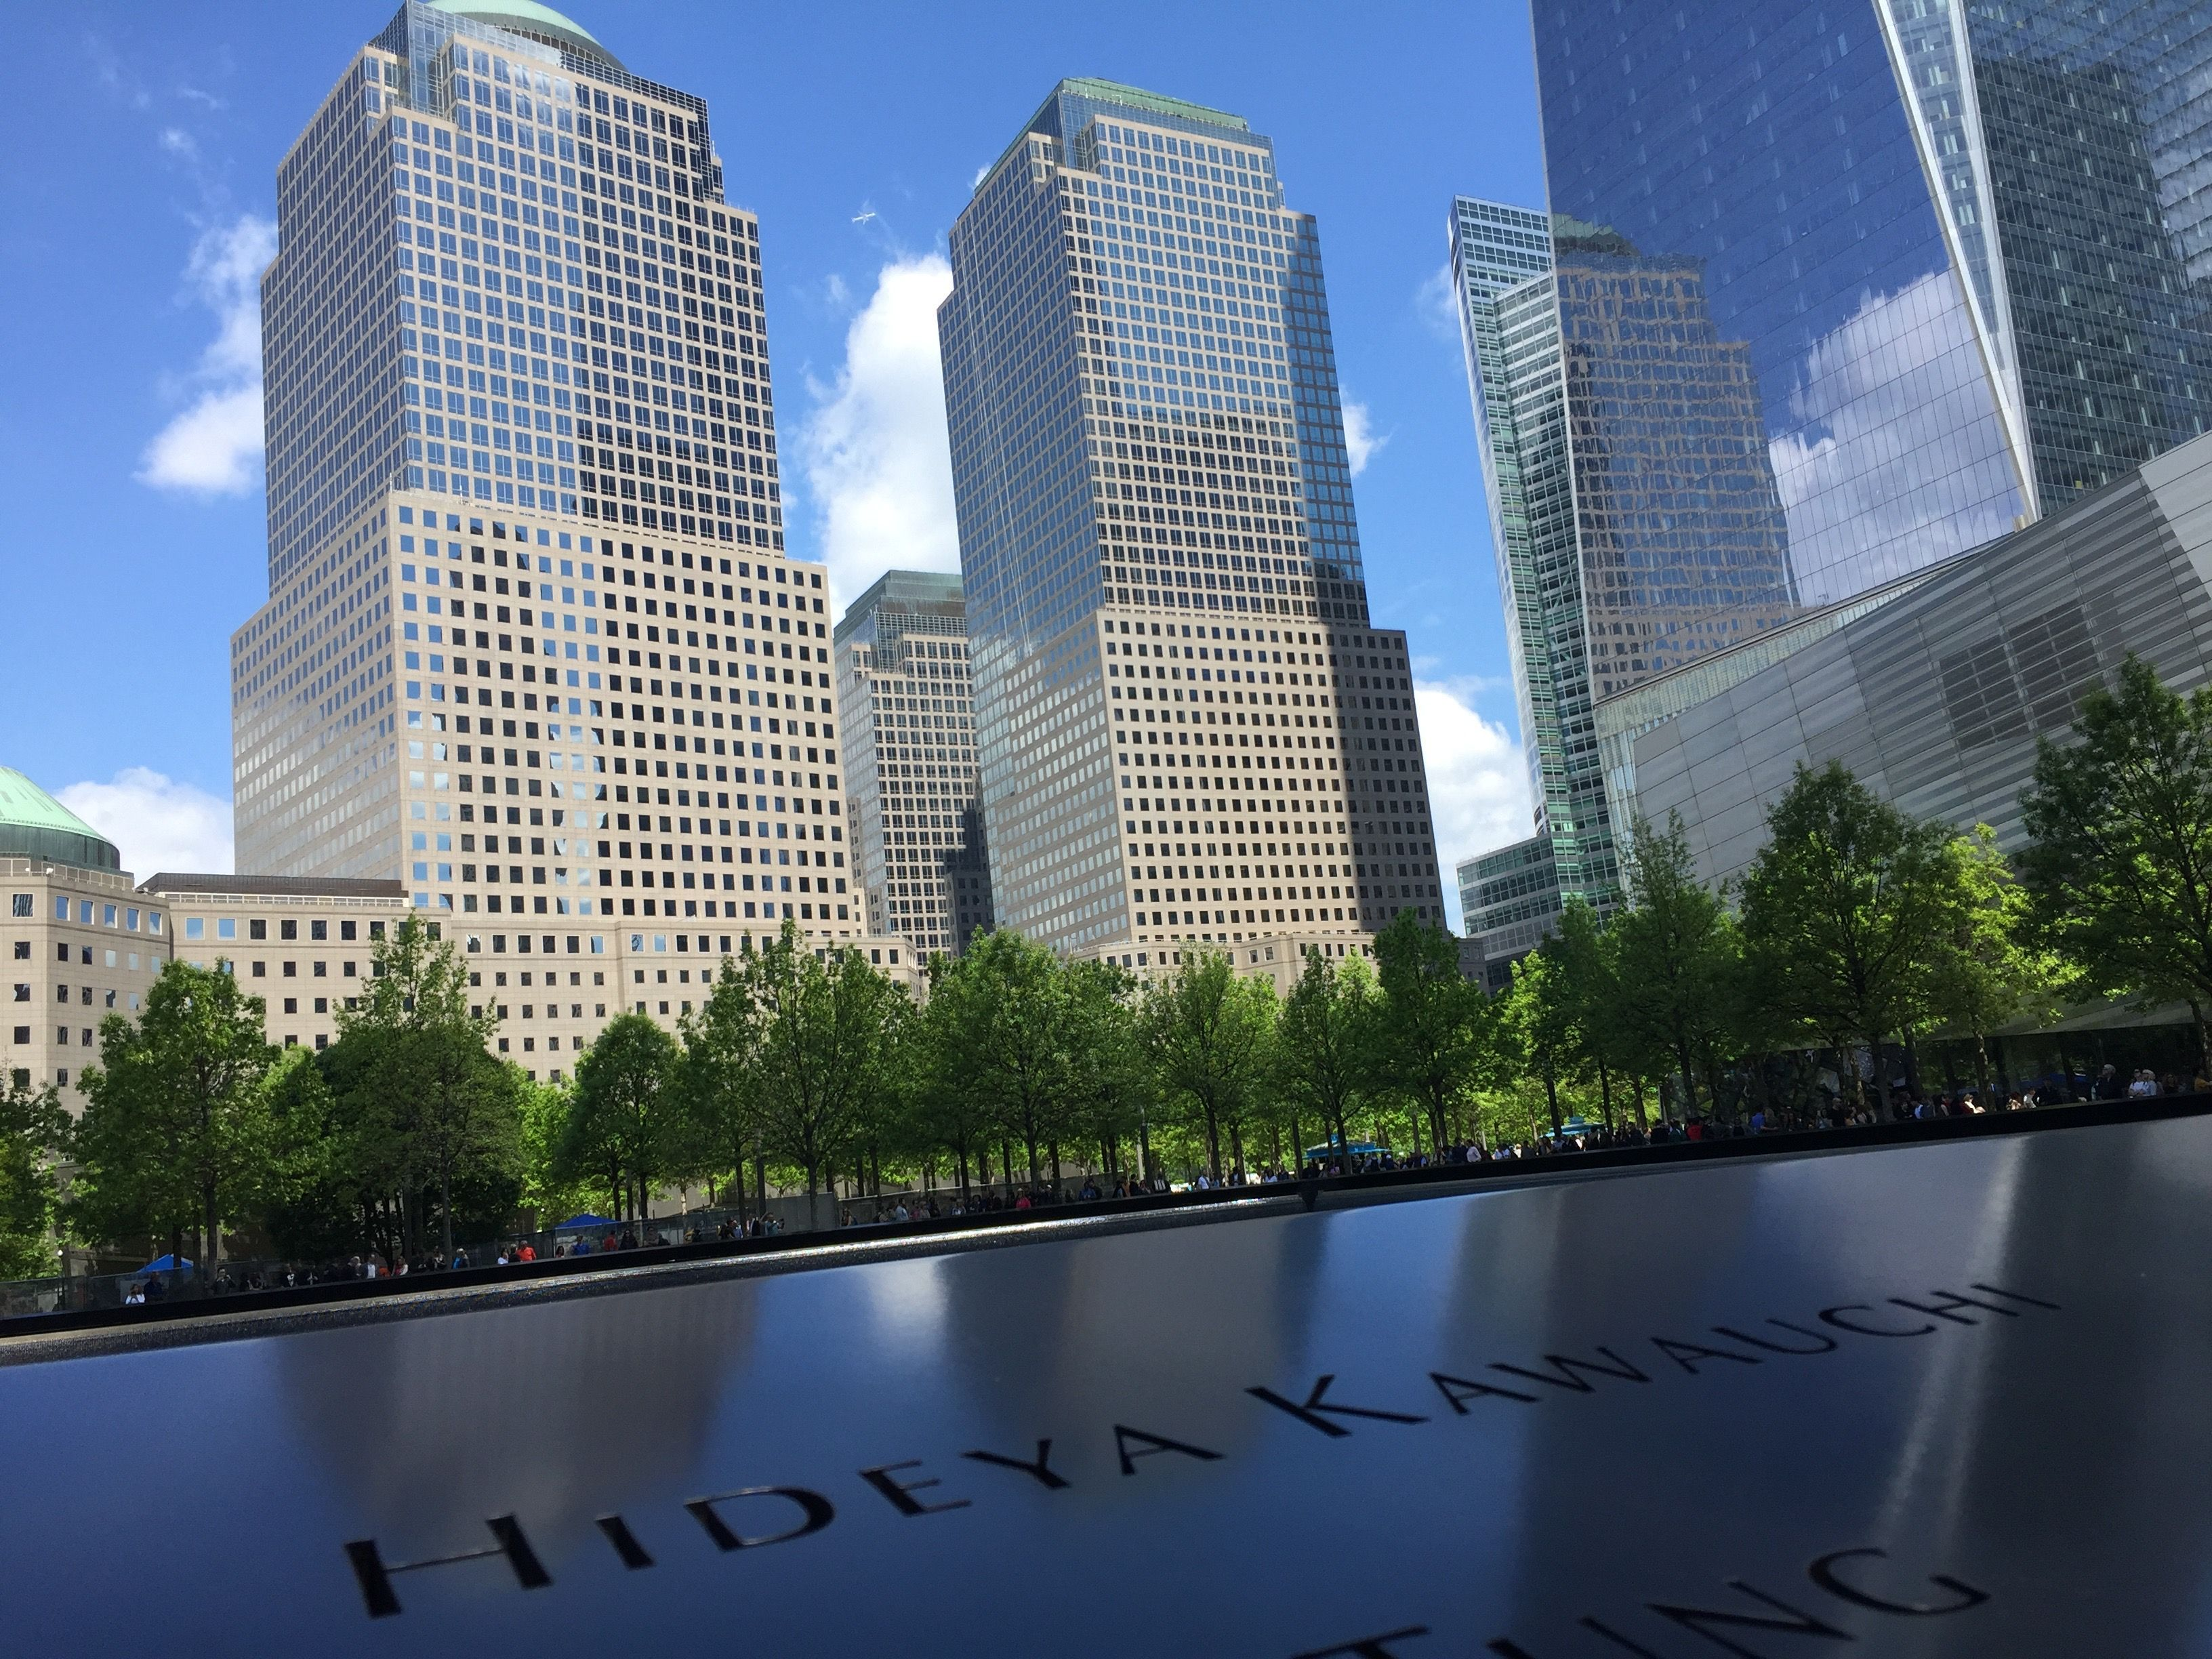 Ground Zero NYC #Respect #groundzeronyc Ground Zero NYC #Respect #groundzeronyc